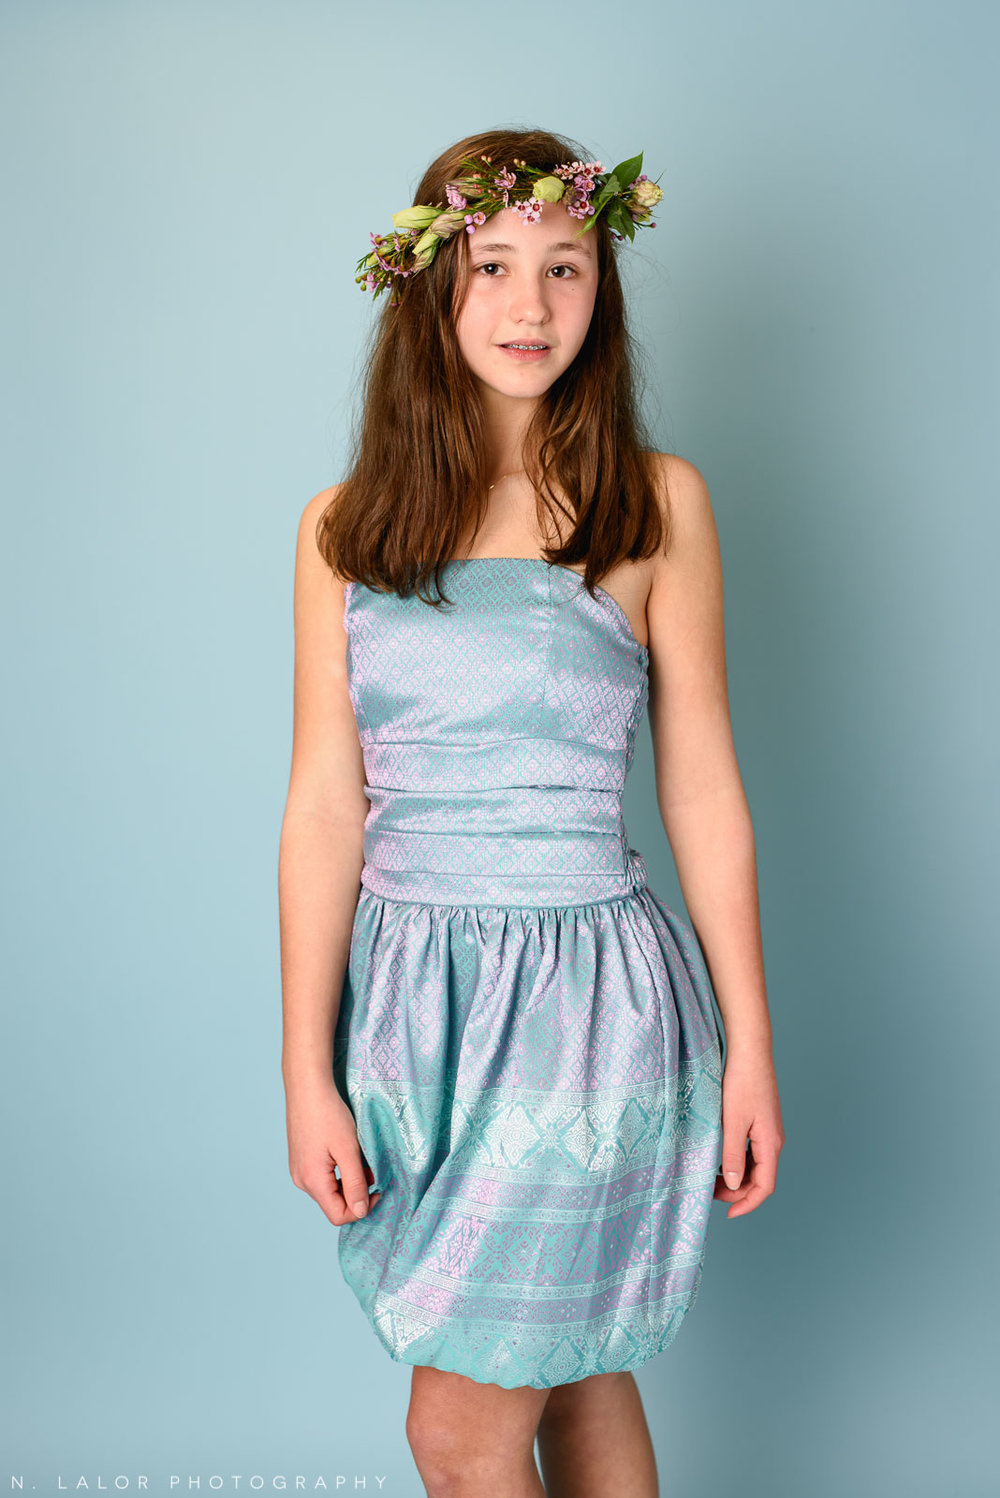 Beautiful and confident, wearing a Stella M'Lia dress. Tween girl fashion portrait by N. Lalor Photography. New Canaan, Connecticut.